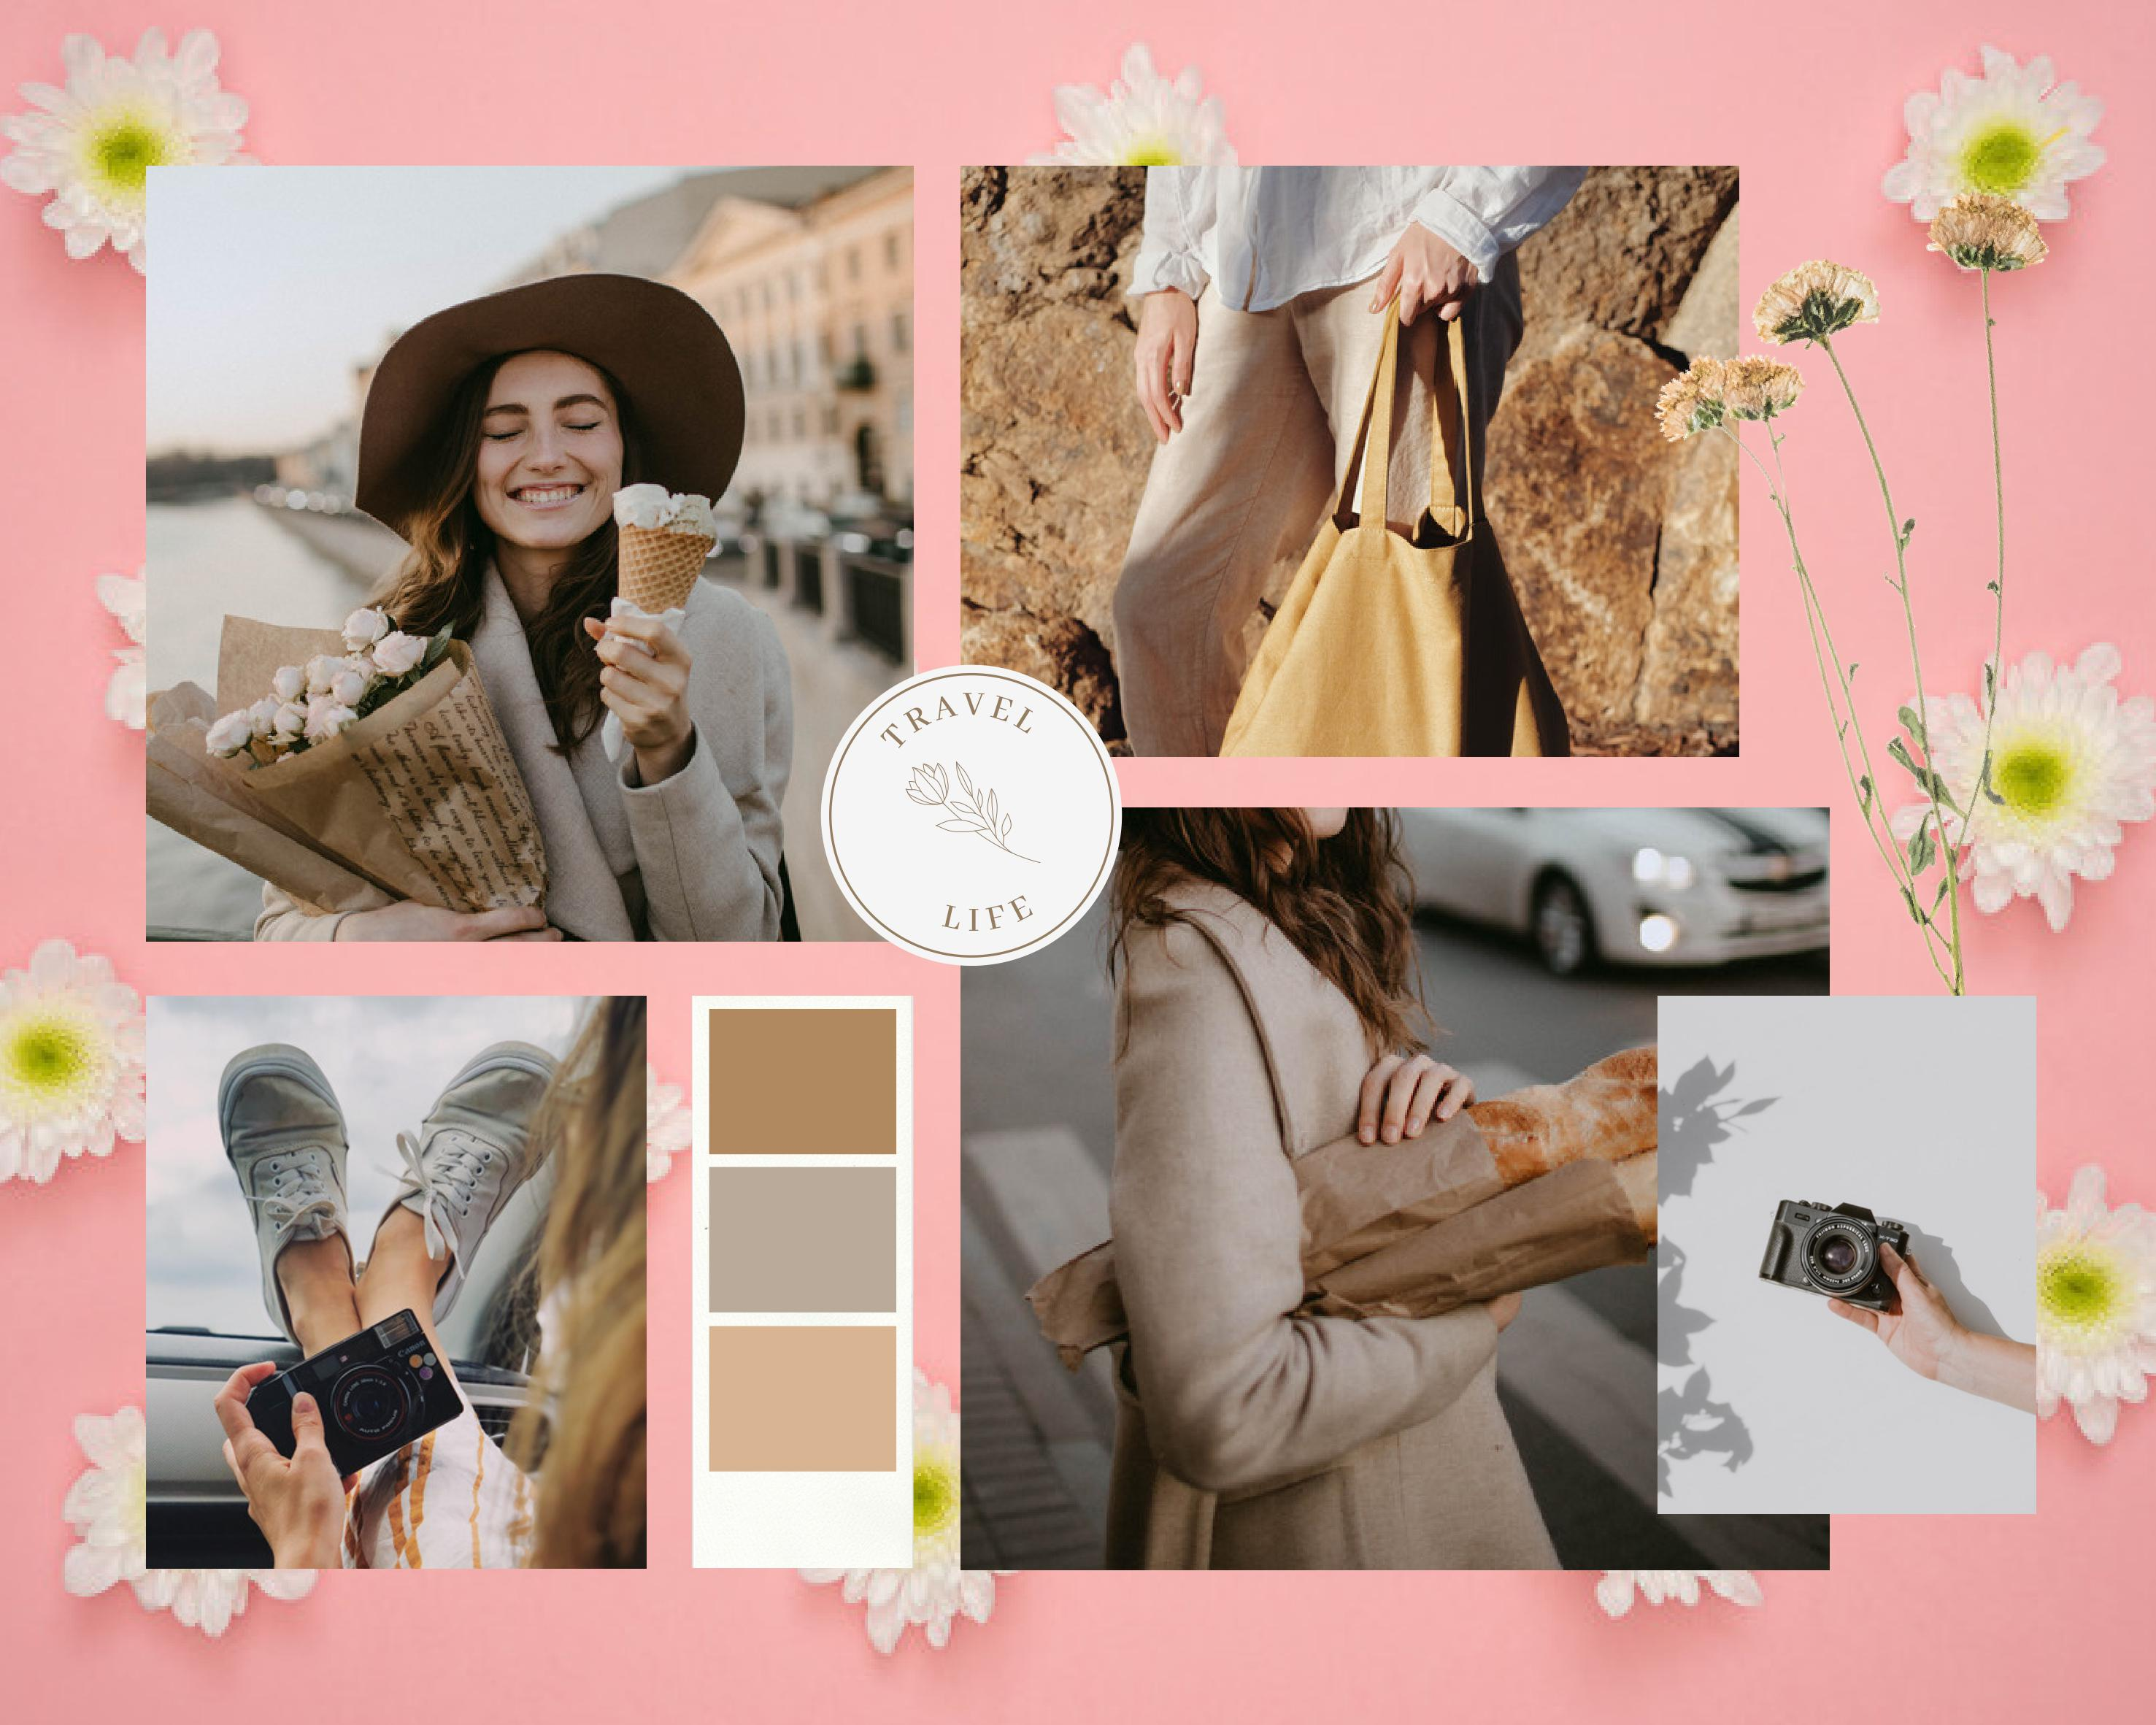 Any design using Canva for your social media